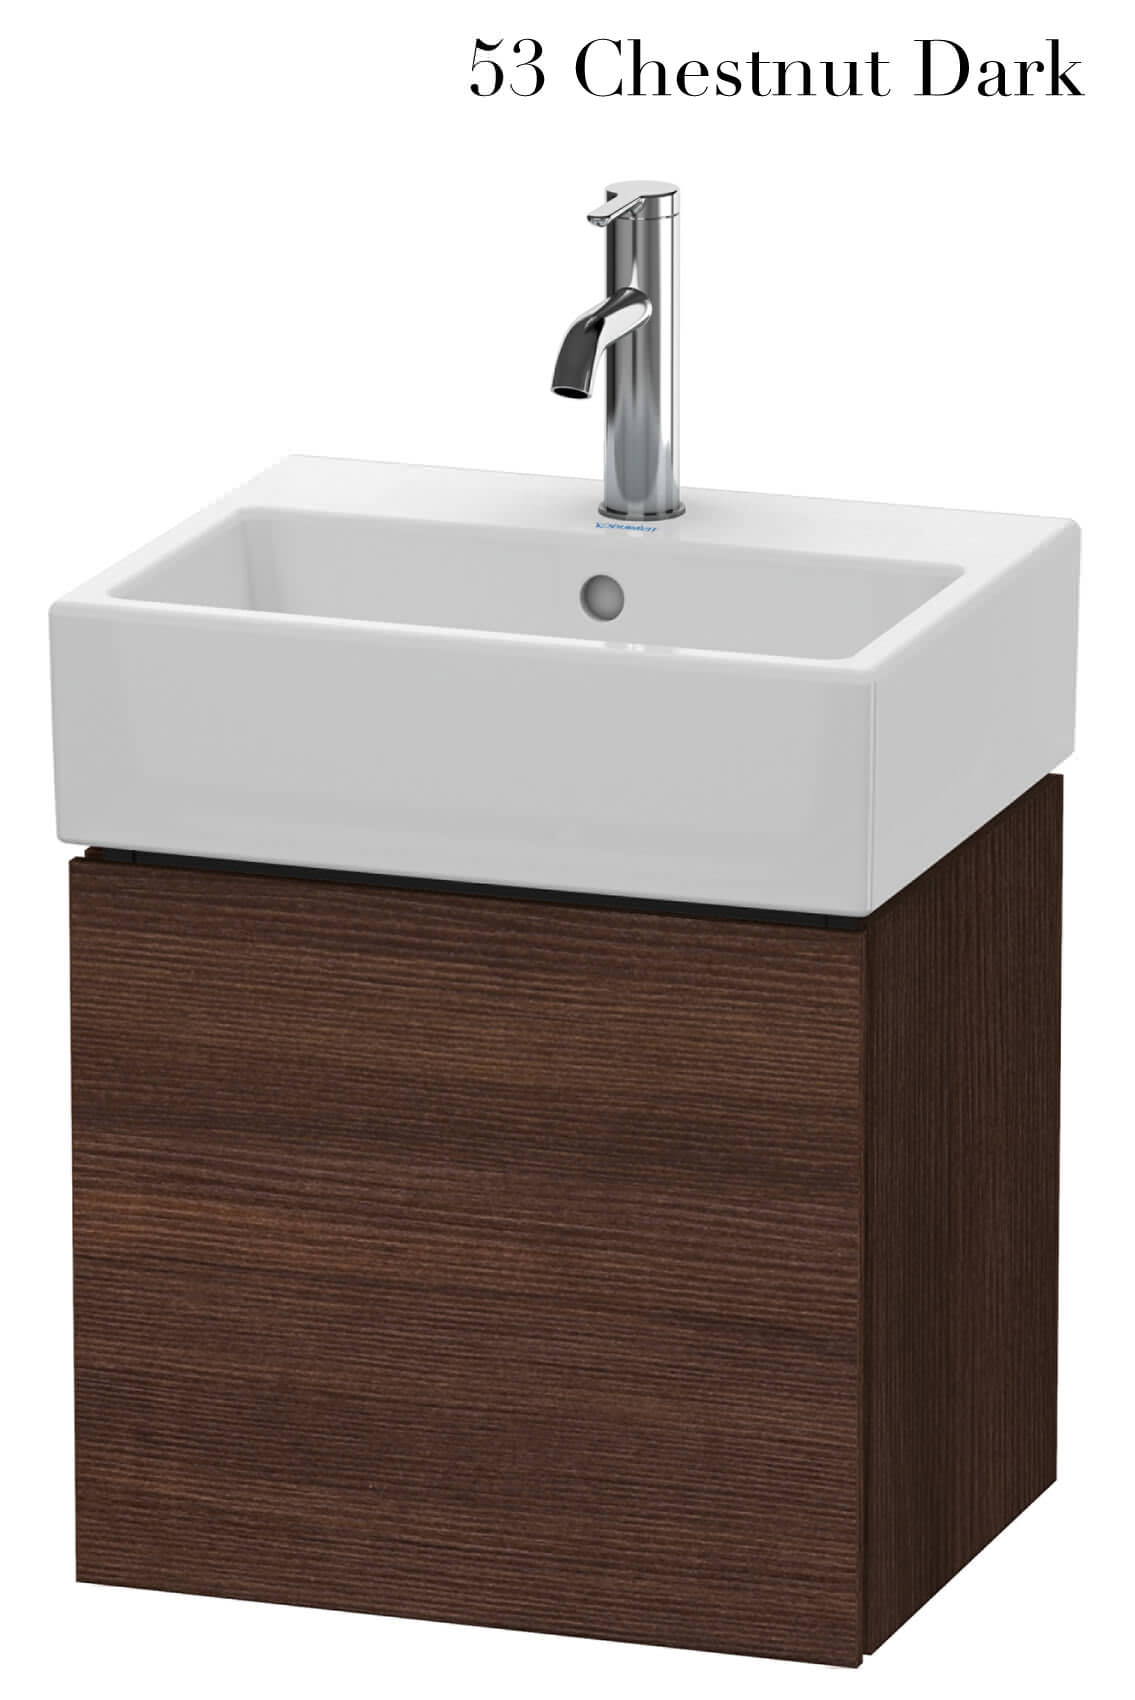 duravit l cube 434mm wall mounted vanity unit with vero air basin. Black Bedroom Furniture Sets. Home Design Ideas